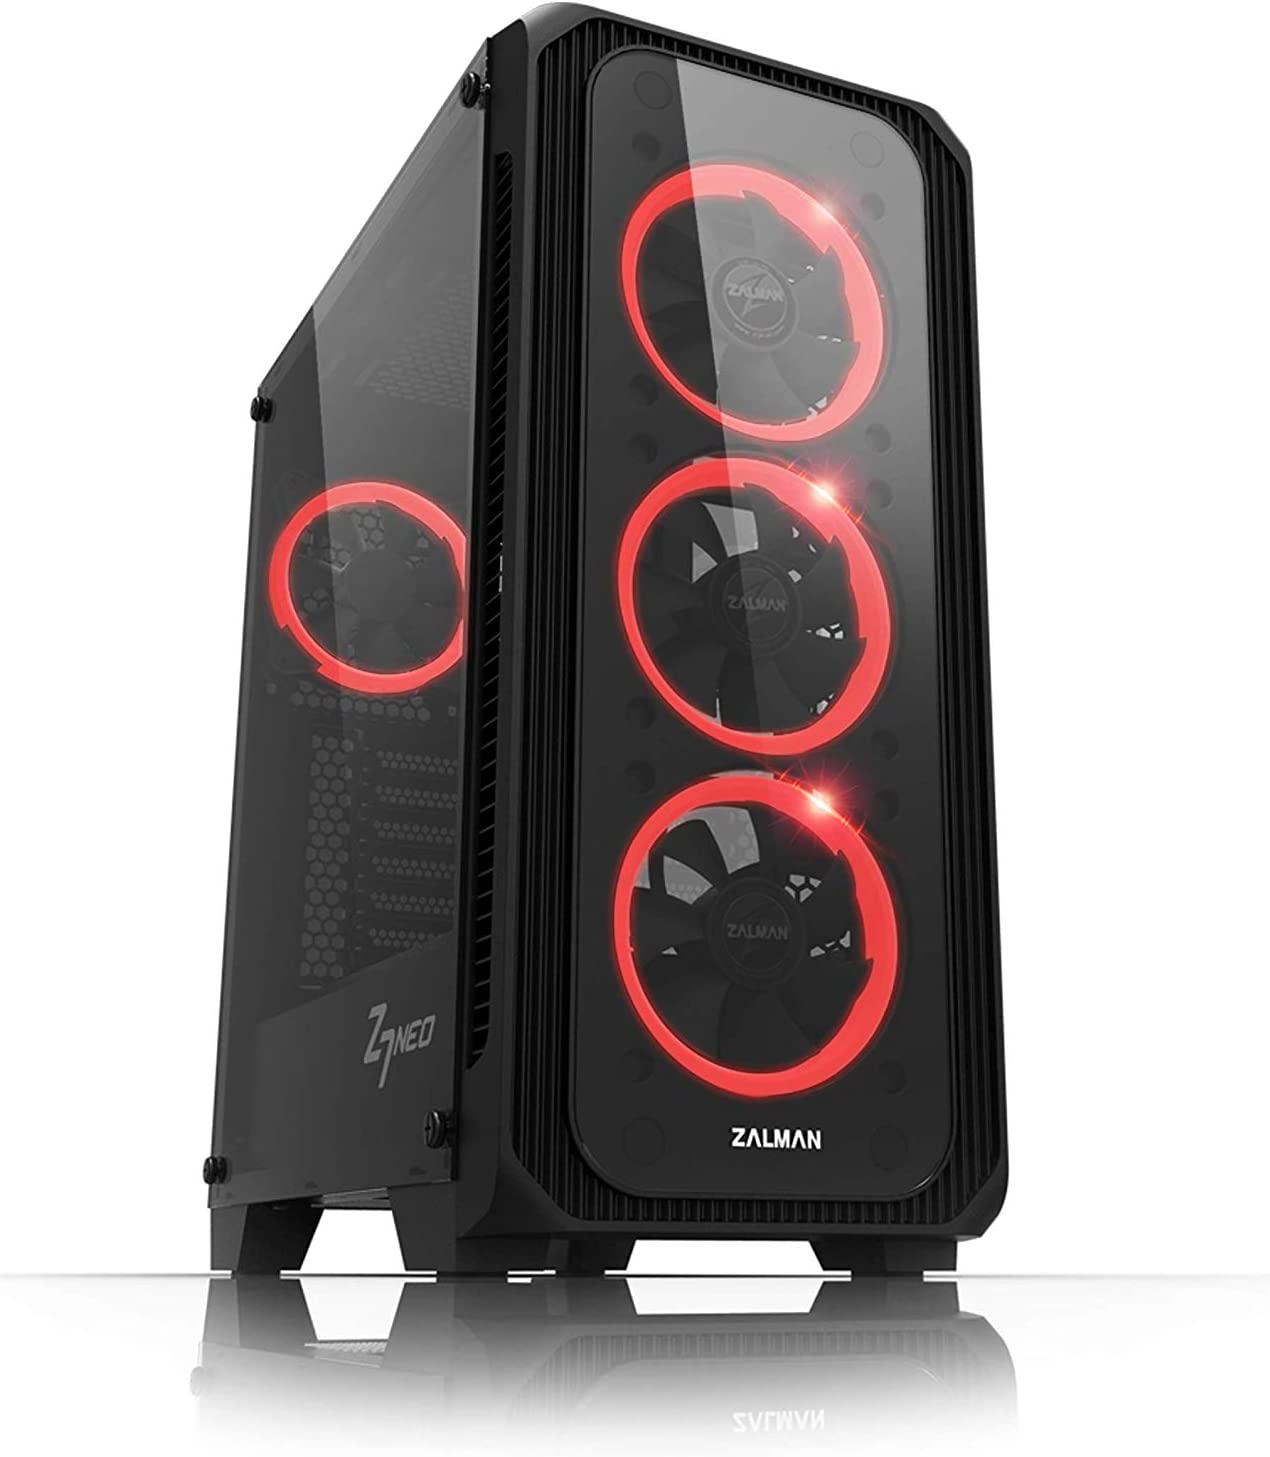 Zalman Z7 Neo for ATX Mid Tower Computer/PC CASE, Black, 2 Tempered Glass Side & Front Panel, RGB LED Lighting SYNC Fan Controller, Pre-Installed 4 x 120mm RGB Ring Fans, High-End PC Case, Black